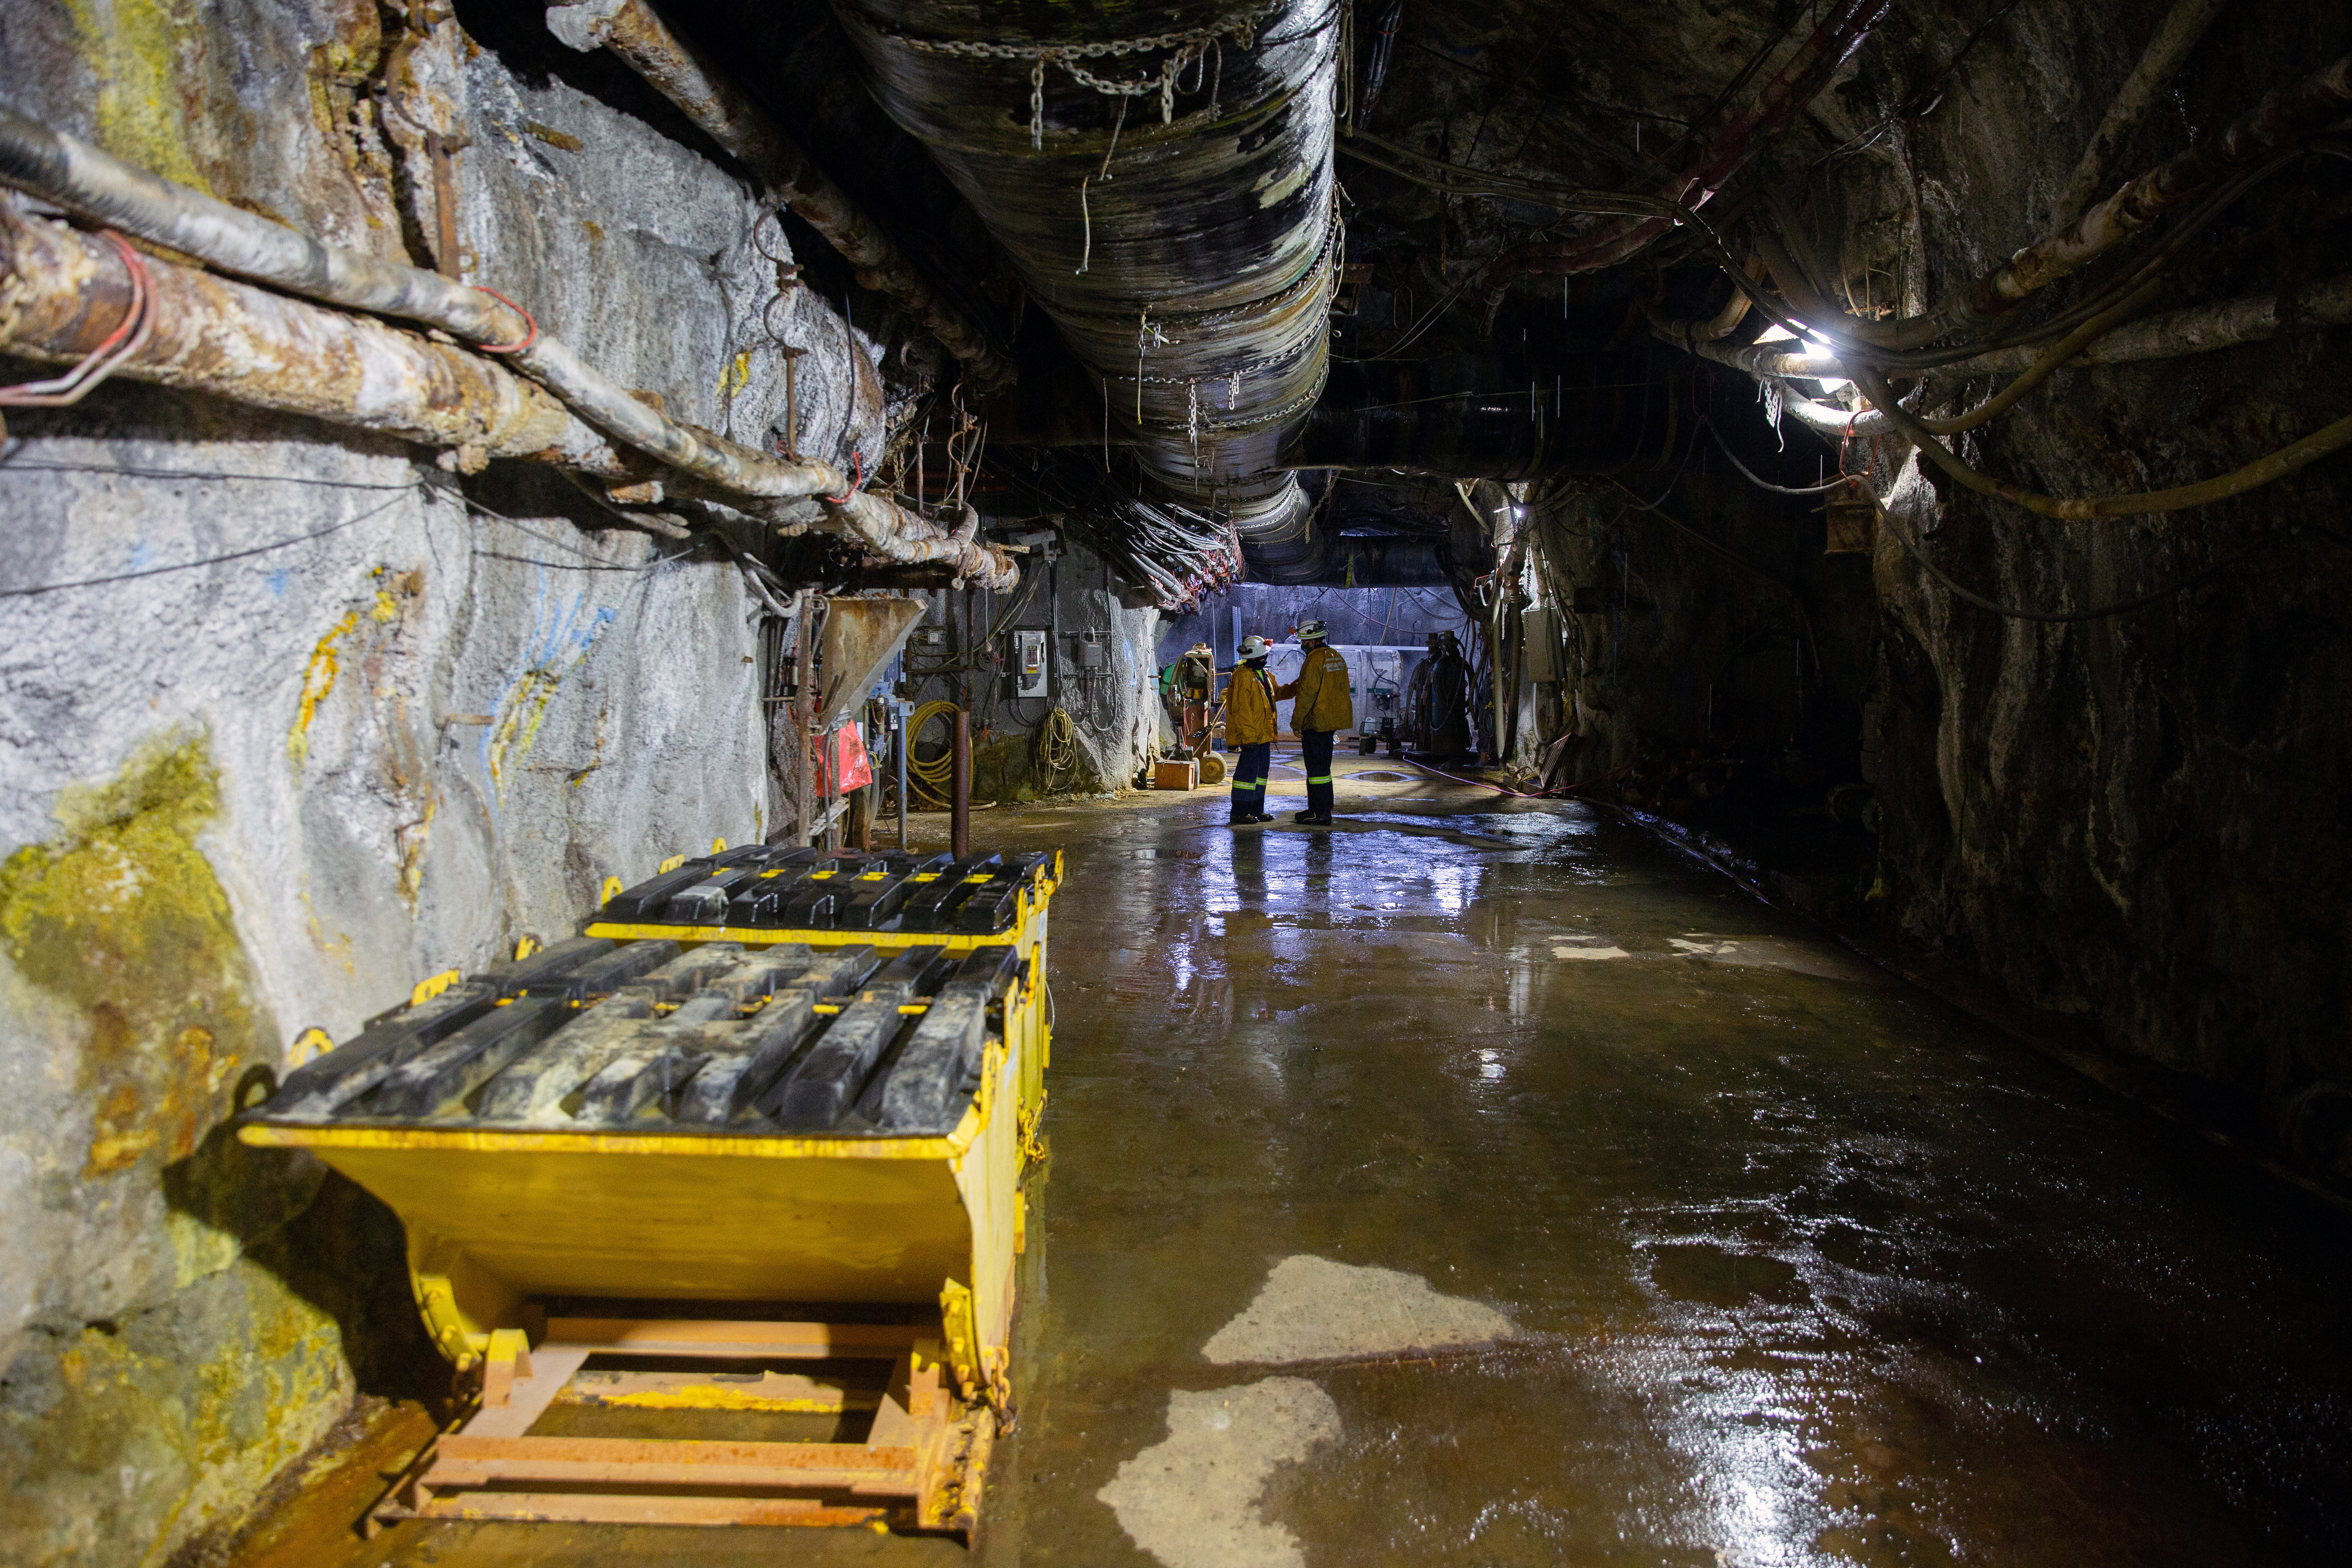 Mine workers talk 6780 ft (2066 m) underground in the Resolution Copper exploratory mine shaft 10 in Superior, Arizona, U.S., March 30, 2021. Picture taken March 30, 2021.  REUTERS/Caitlin O'Hara